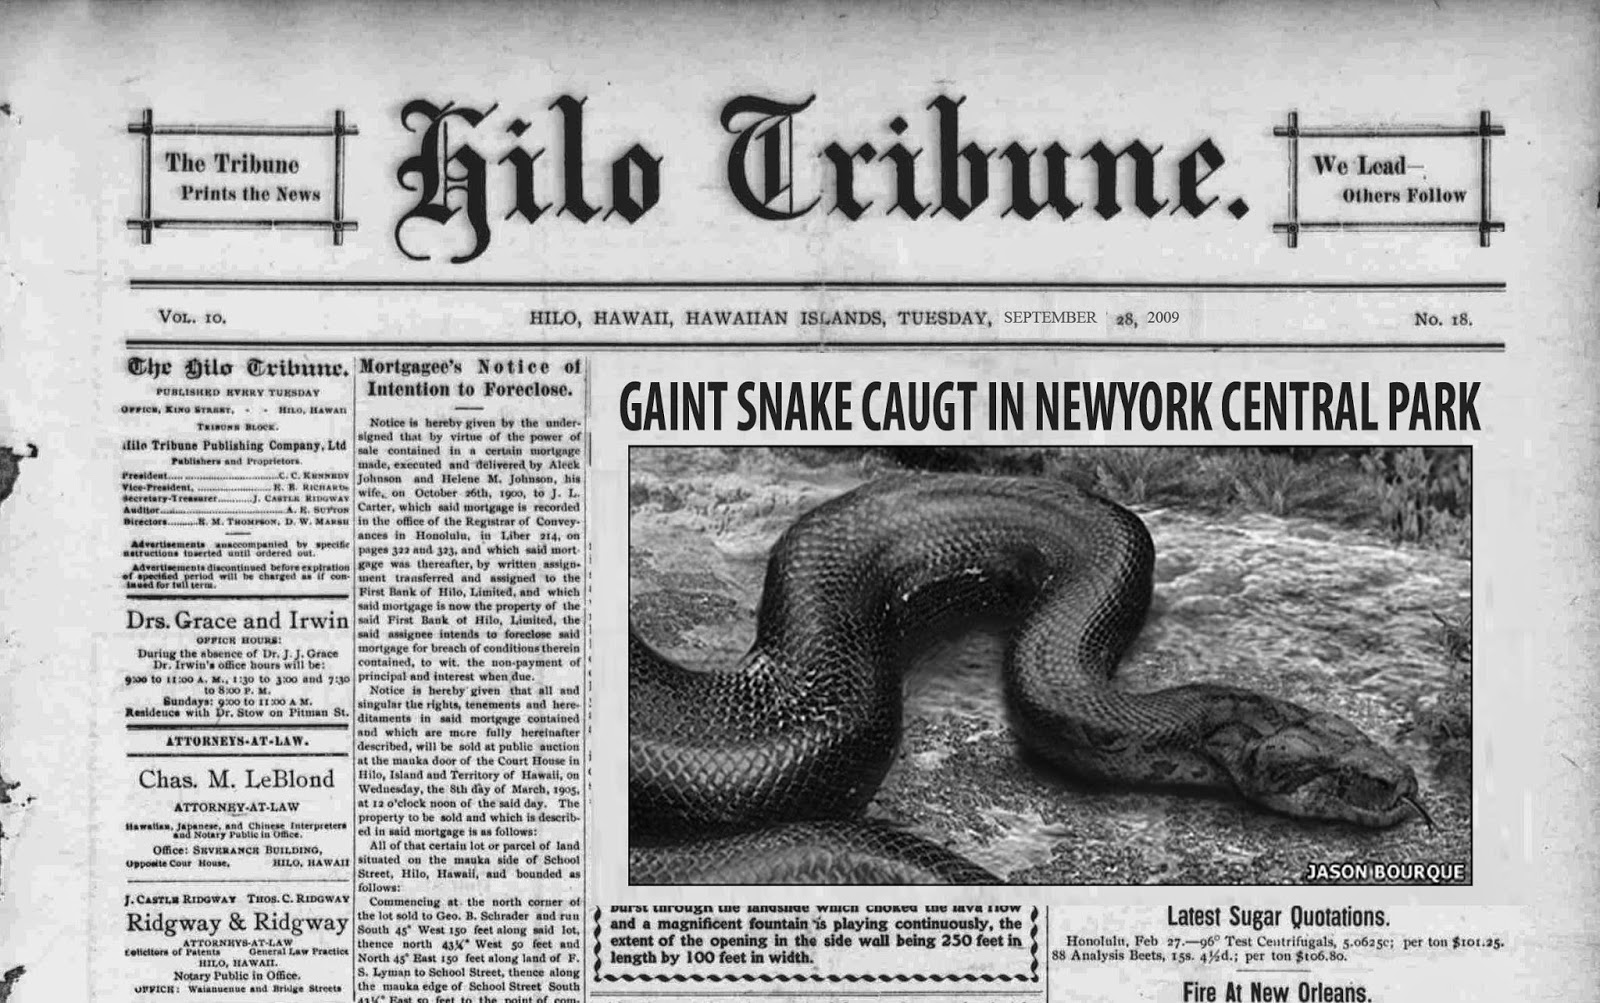 How to talk to any girl: Giant snake caught in central park